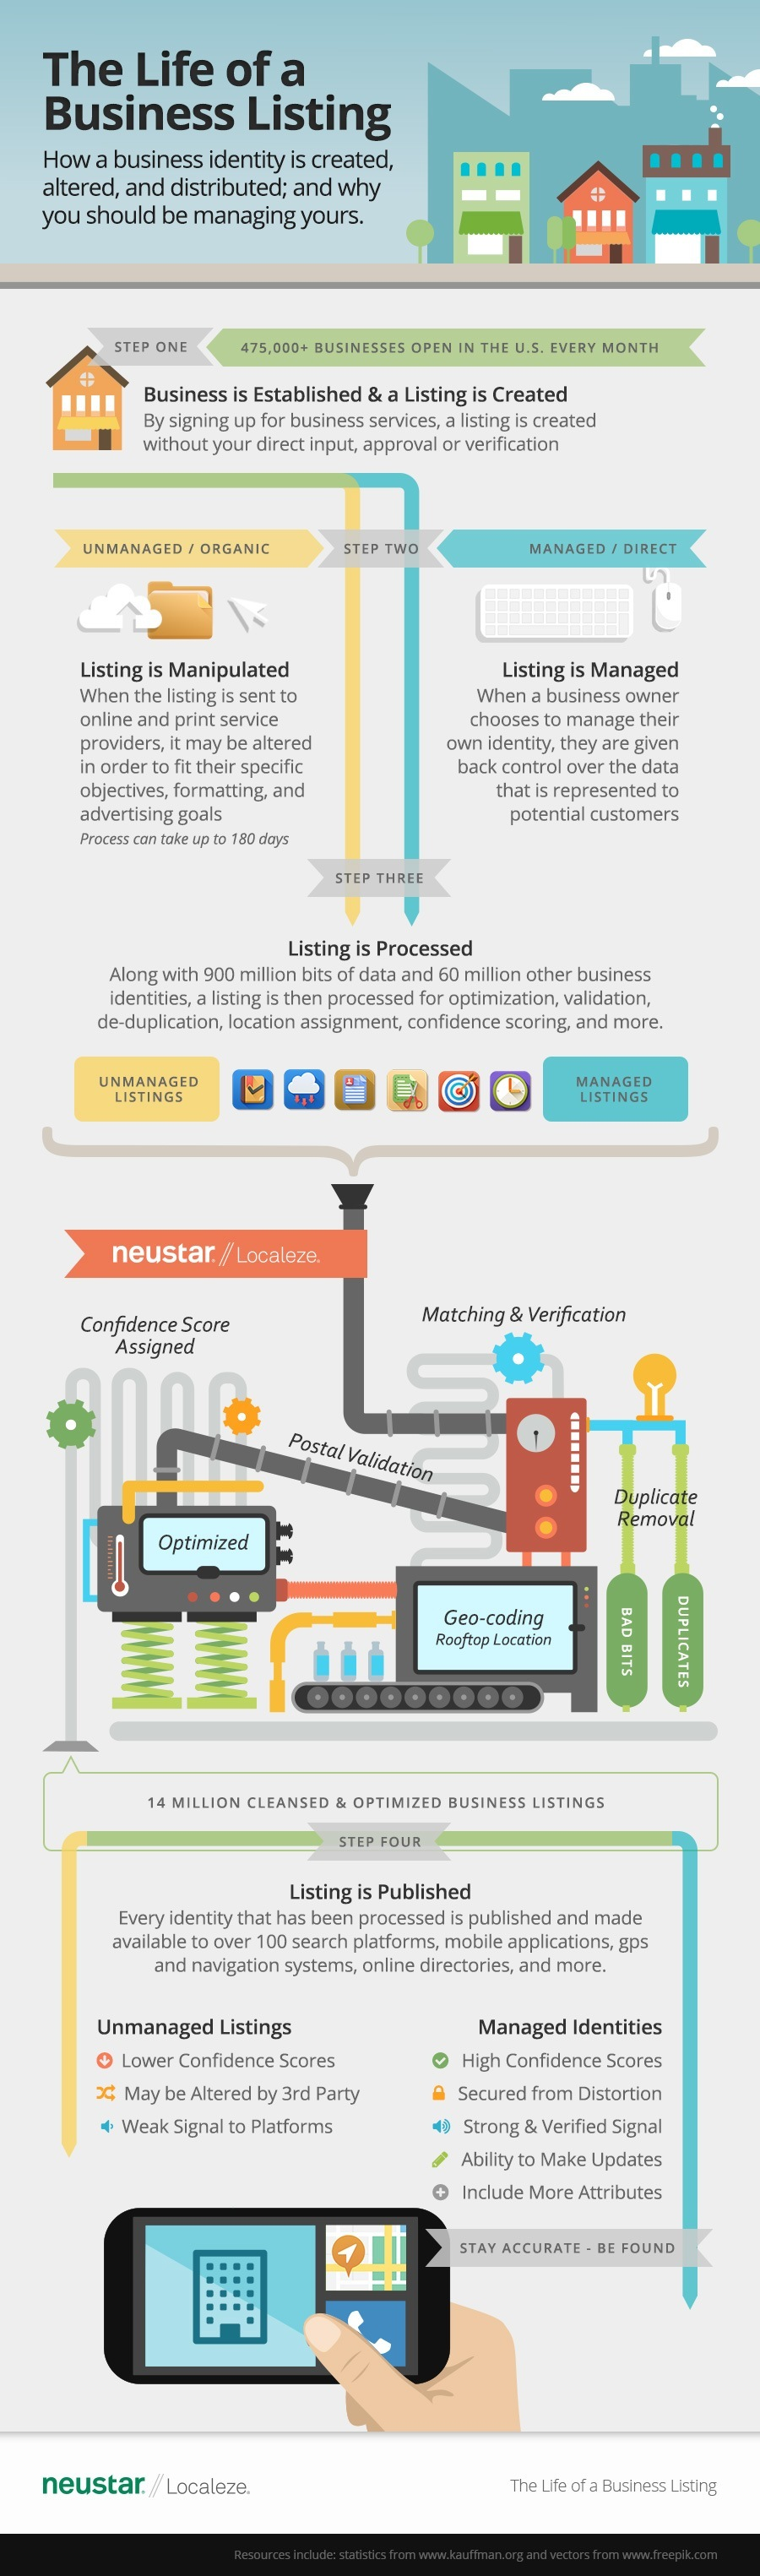 The Life of a Business Listing Infographic